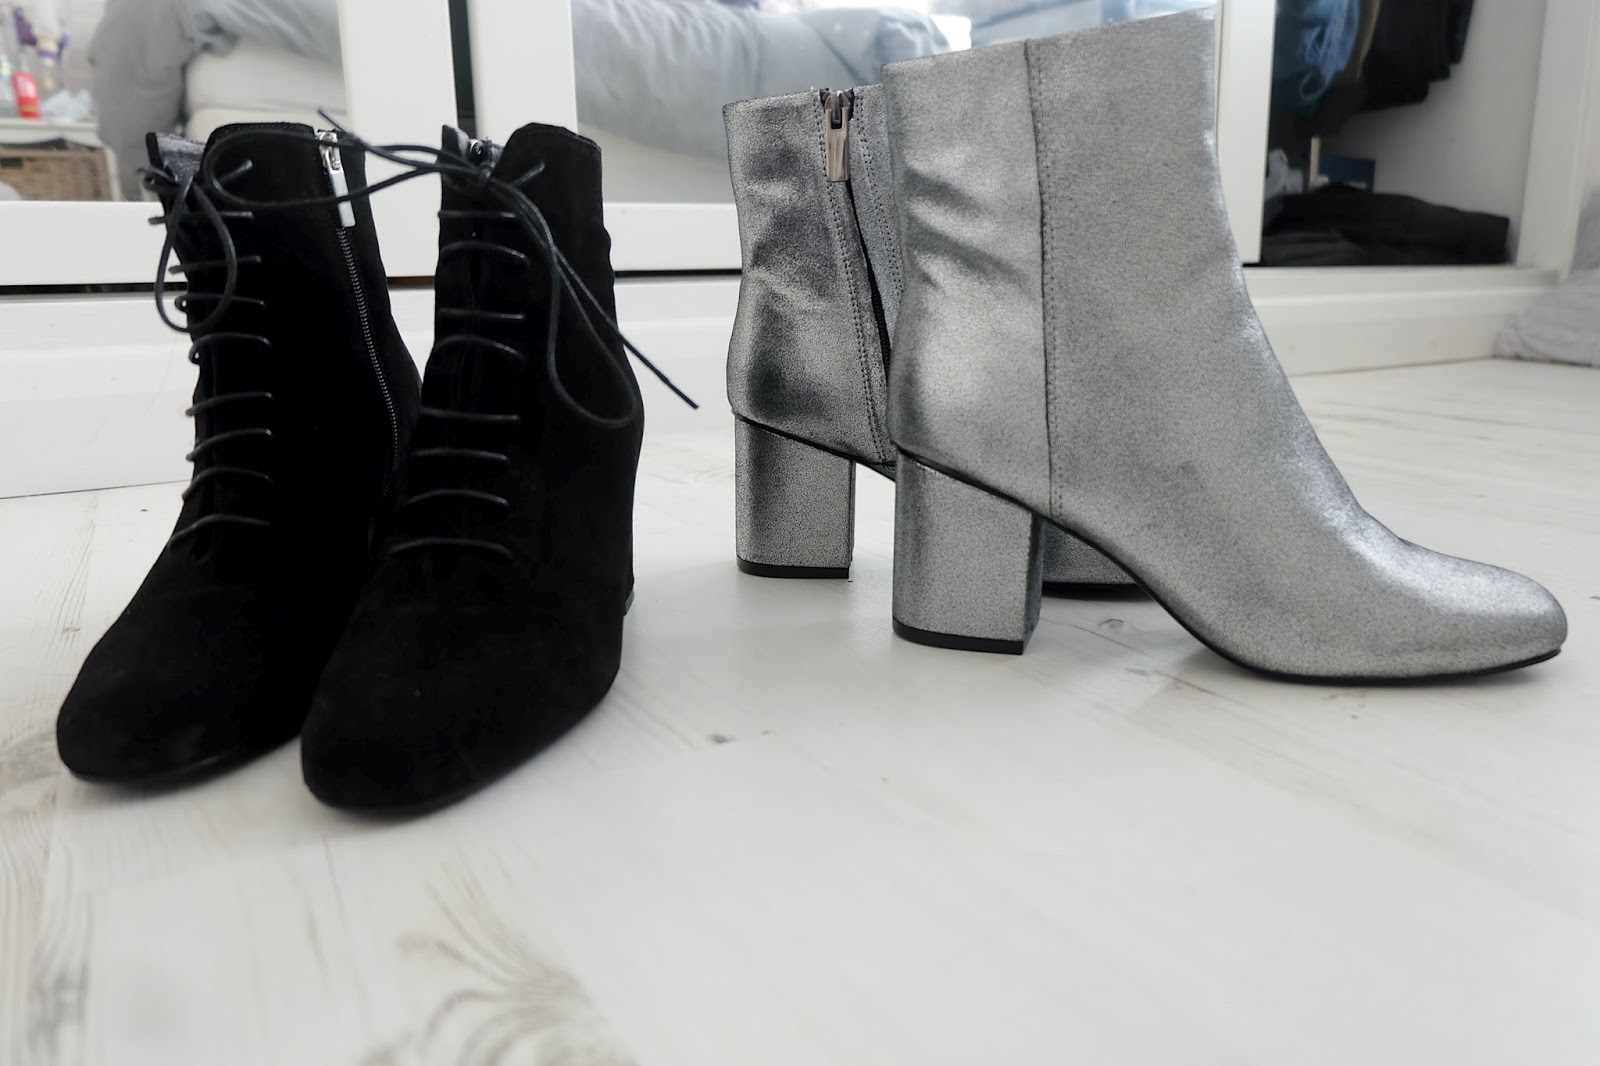 zalando iconics lace up boots, warehouse metallic ankle boots